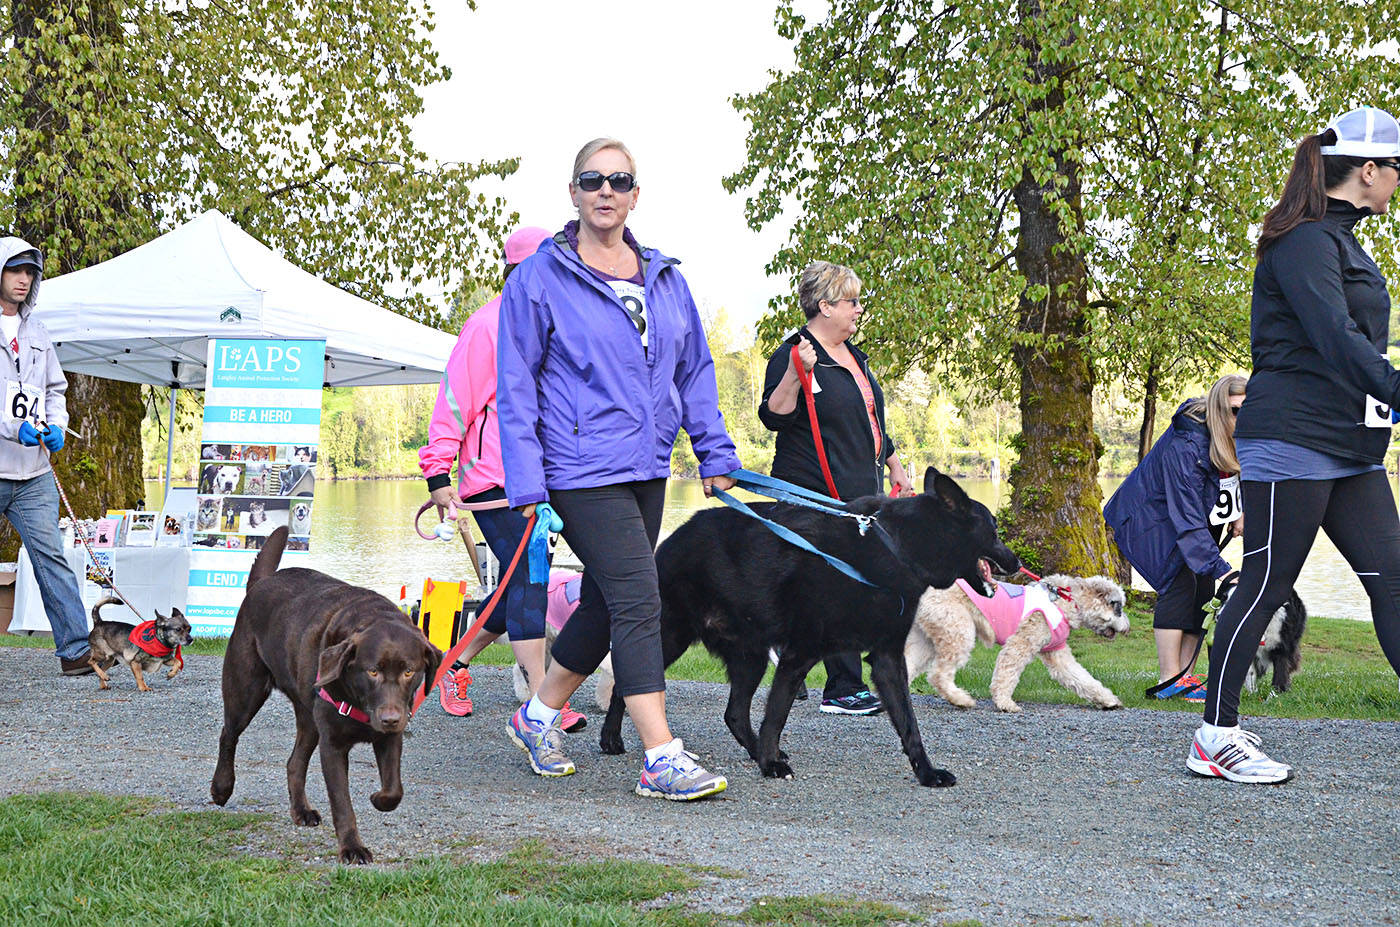 Dogs and their humans run to aid Langley animal shelter